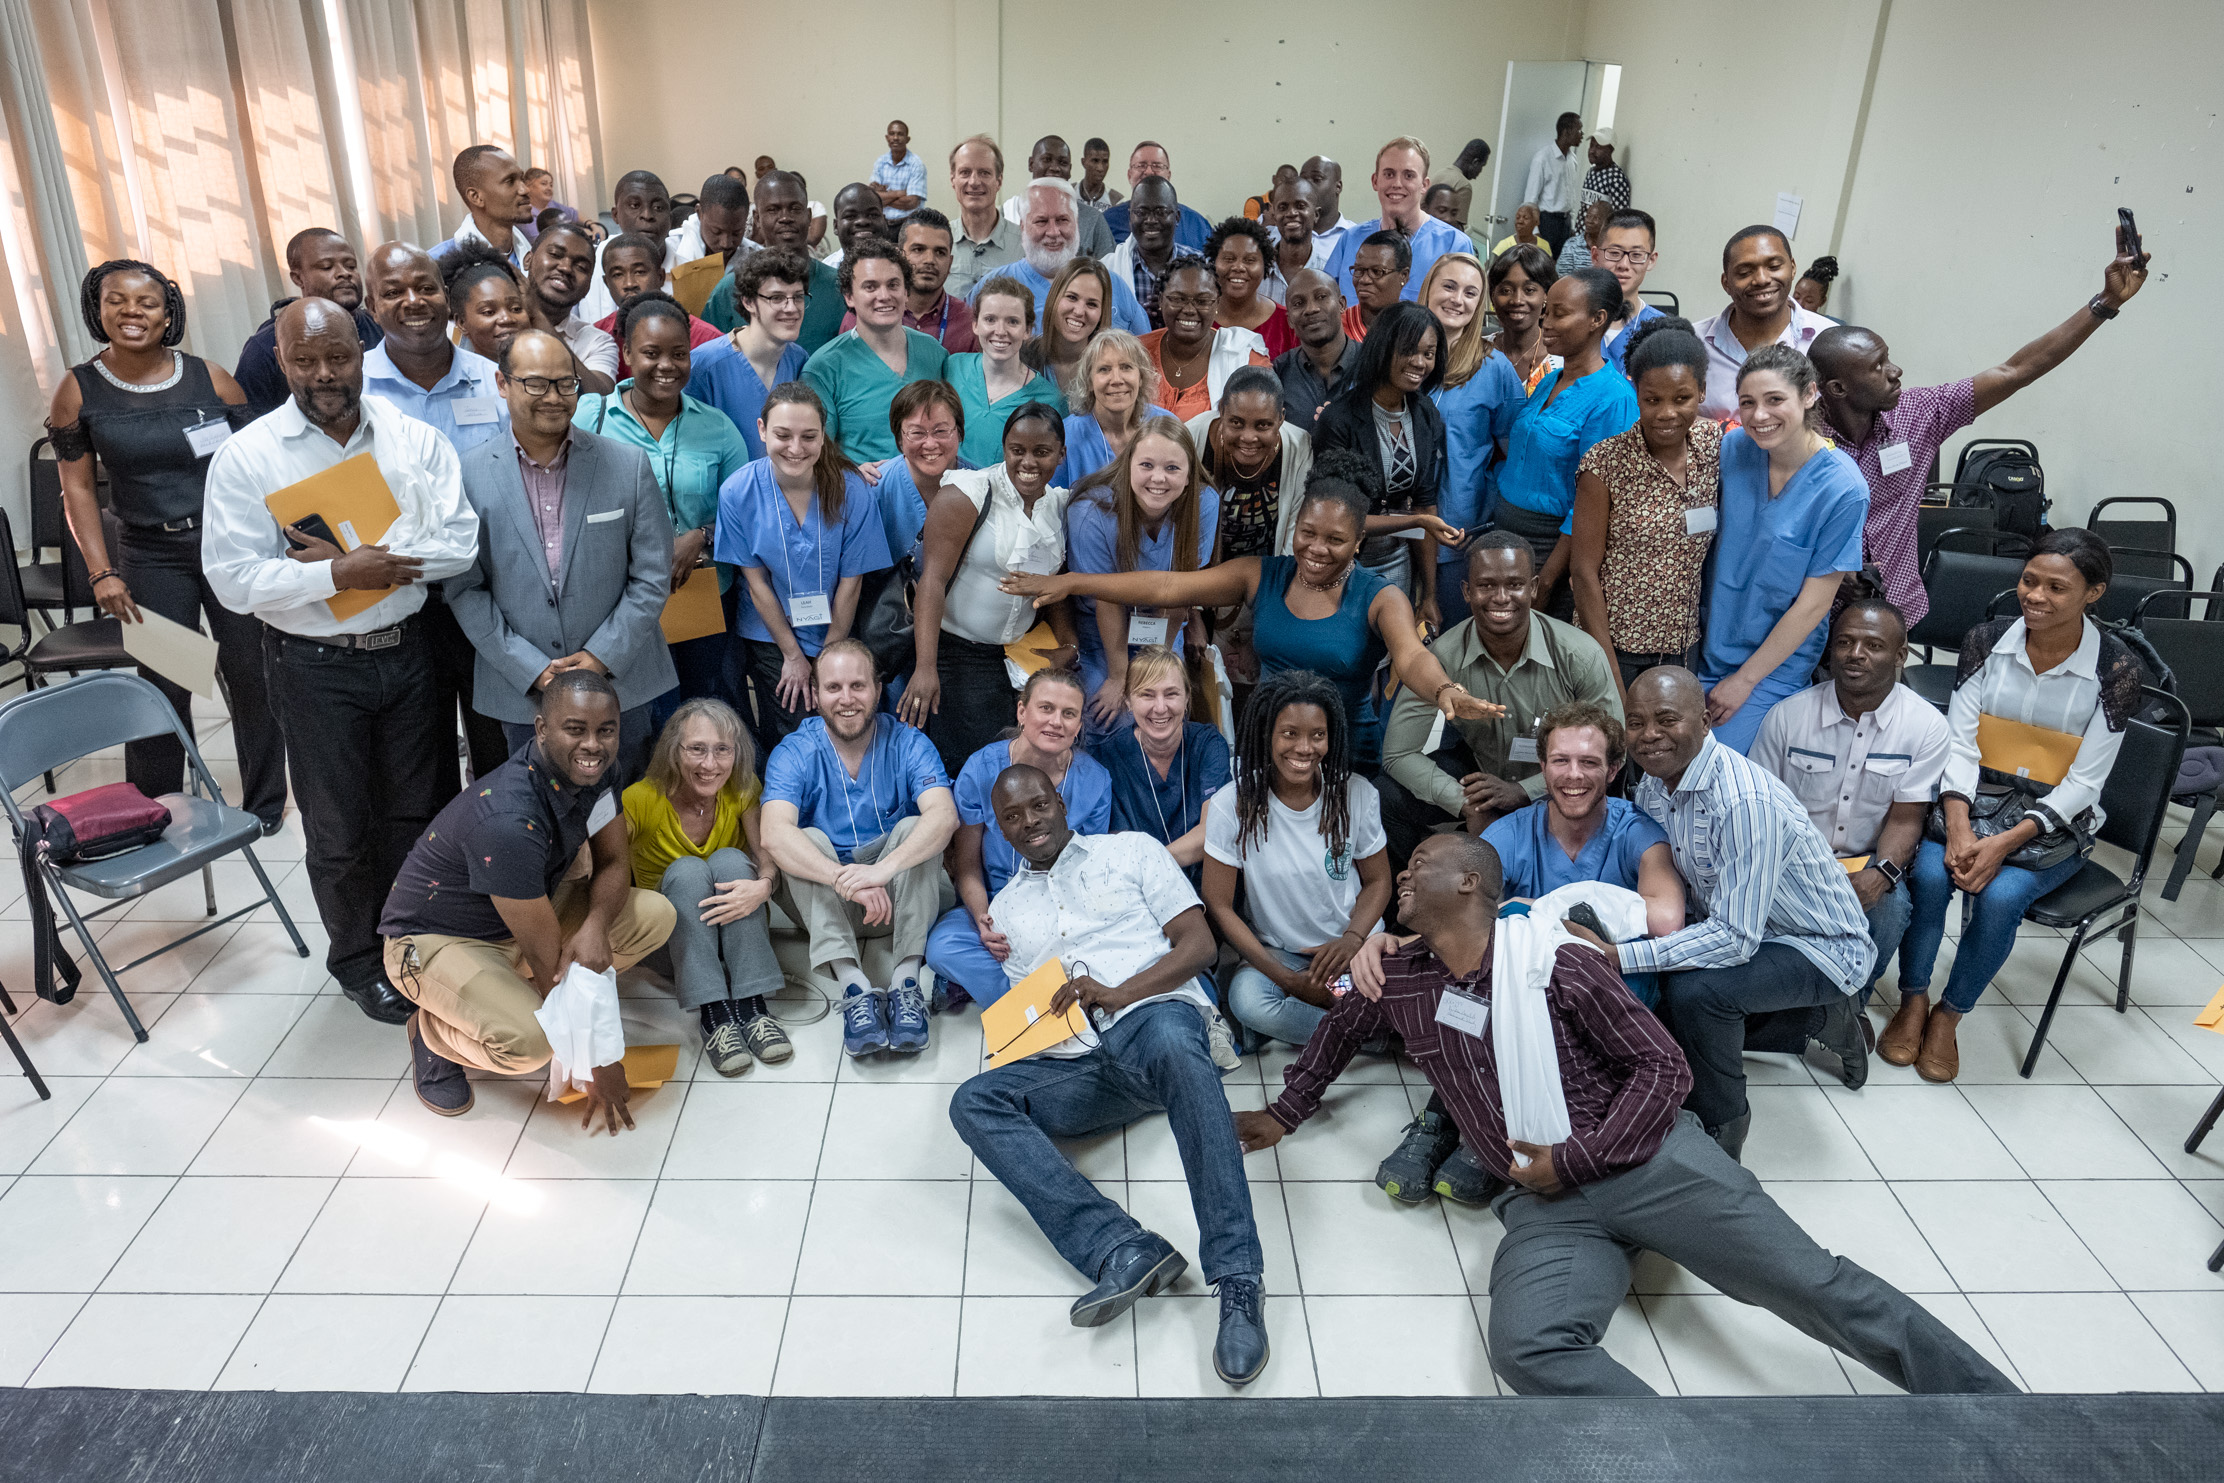 The NYAGI Team wraps up a week of hands-on ultrasound training for medical providers from many regions of Haiti.